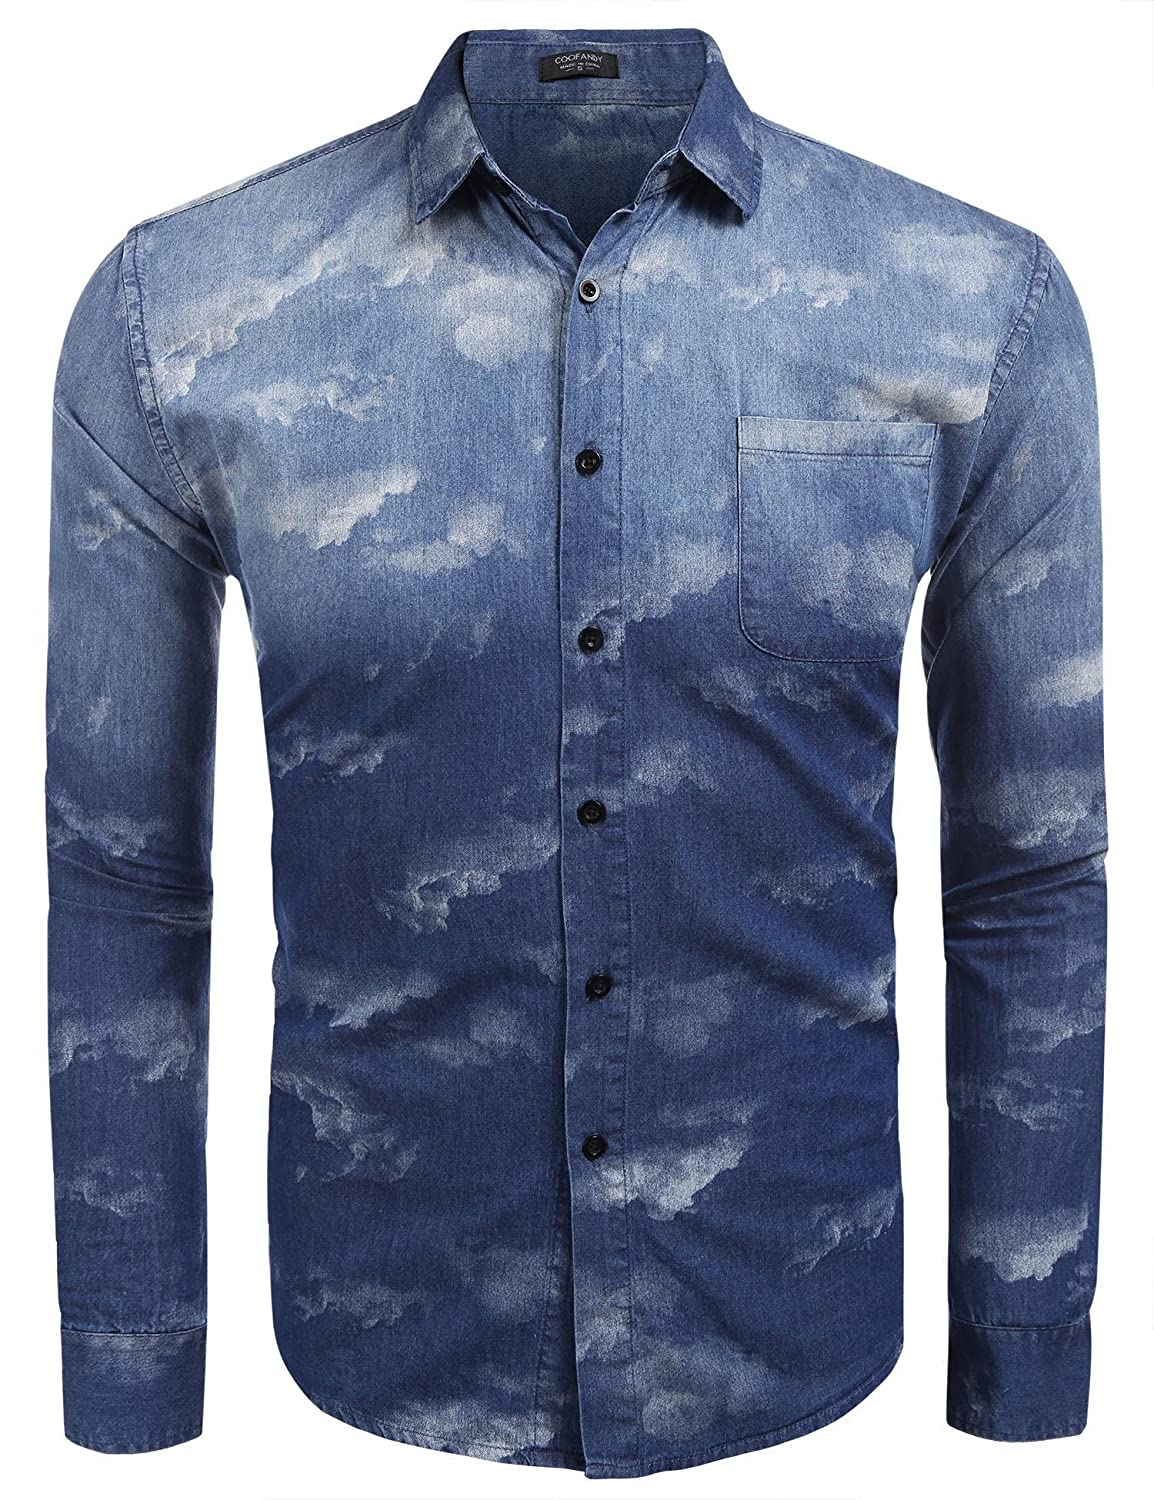 009a7a4376f COOFANDY Men s Camouflage Button Down Shirts Long Sleeve Camo Slim Fit  Dress Shirt at Amazon Men s Clothing store